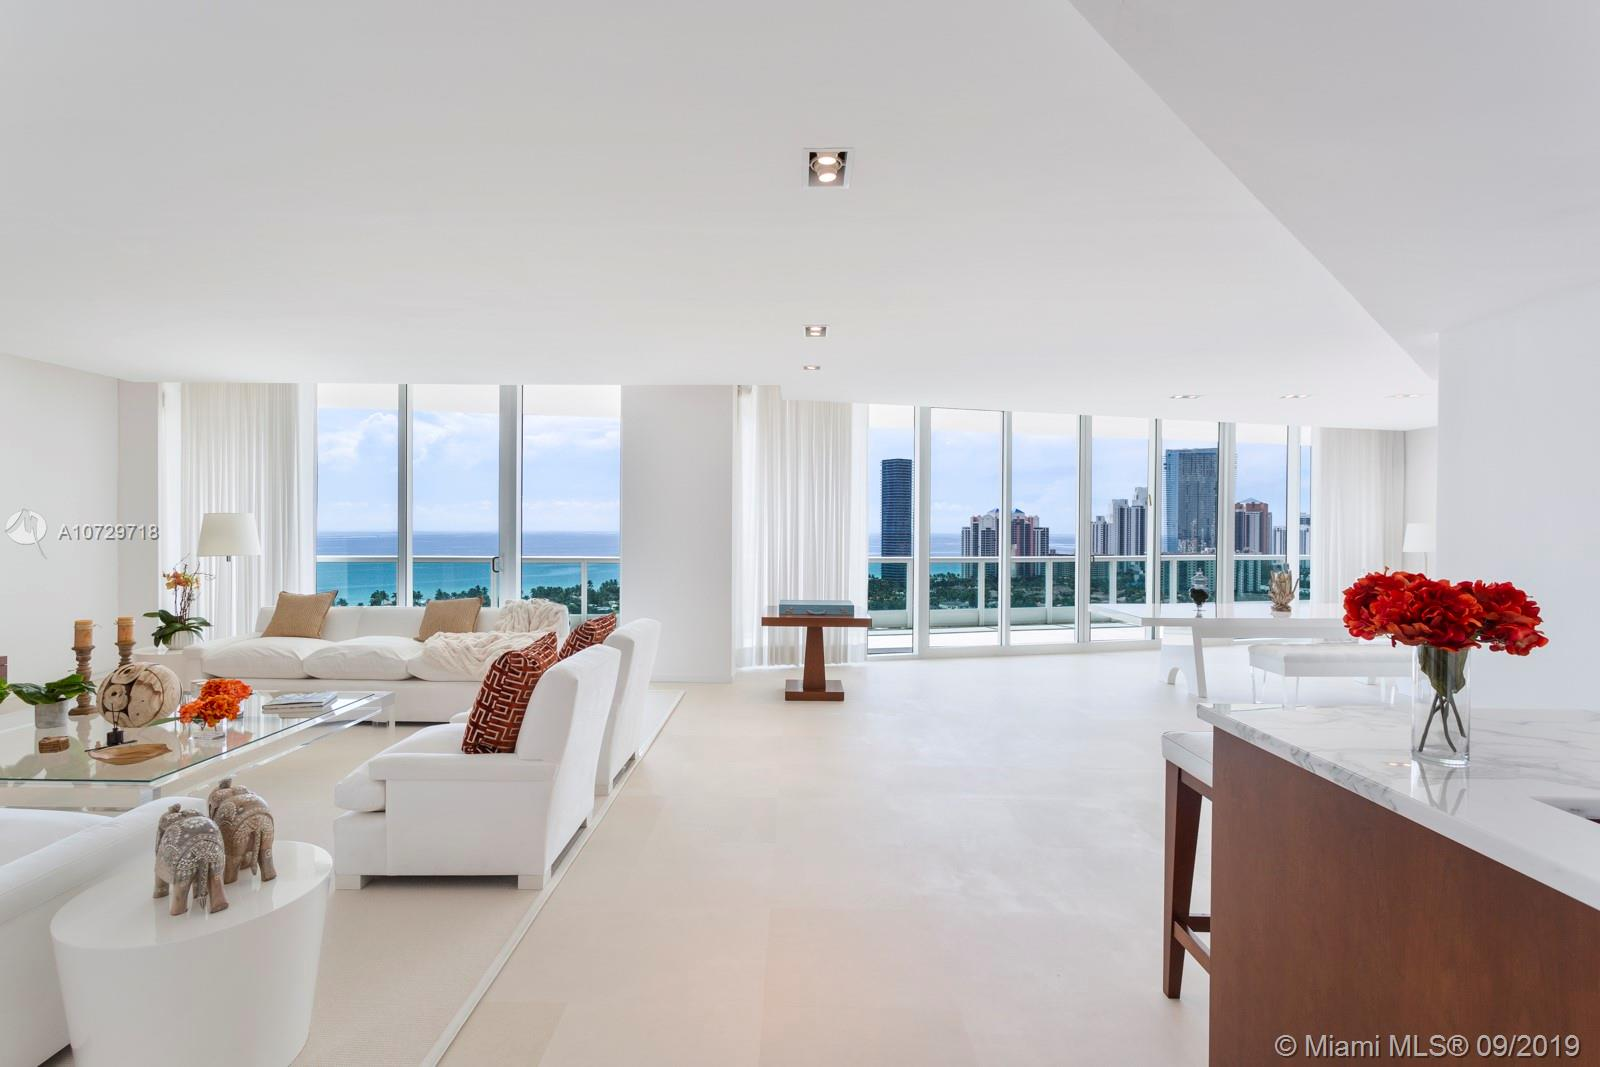 Residence 2501 in the last tower built in Porto Vita offers spectacularly preserved ocean, golf course, and skyline views from its three terraces. Spanning over 5,000 sq. Ft. with a clean, contemporary design with plenty of room for guest or family. A private elevator entry and elegant gallery lead to the open-concept living space; a luxurious master suite plus office and three additional bedroom suites all enjoy incredible views. Country club amenities include a private clubhouse designed by Fanny Haim, an expansive and staffed state-of-the-art fitness center and spa, hair salon, full-service pool, kid's playground, and two residents-only restaurants.